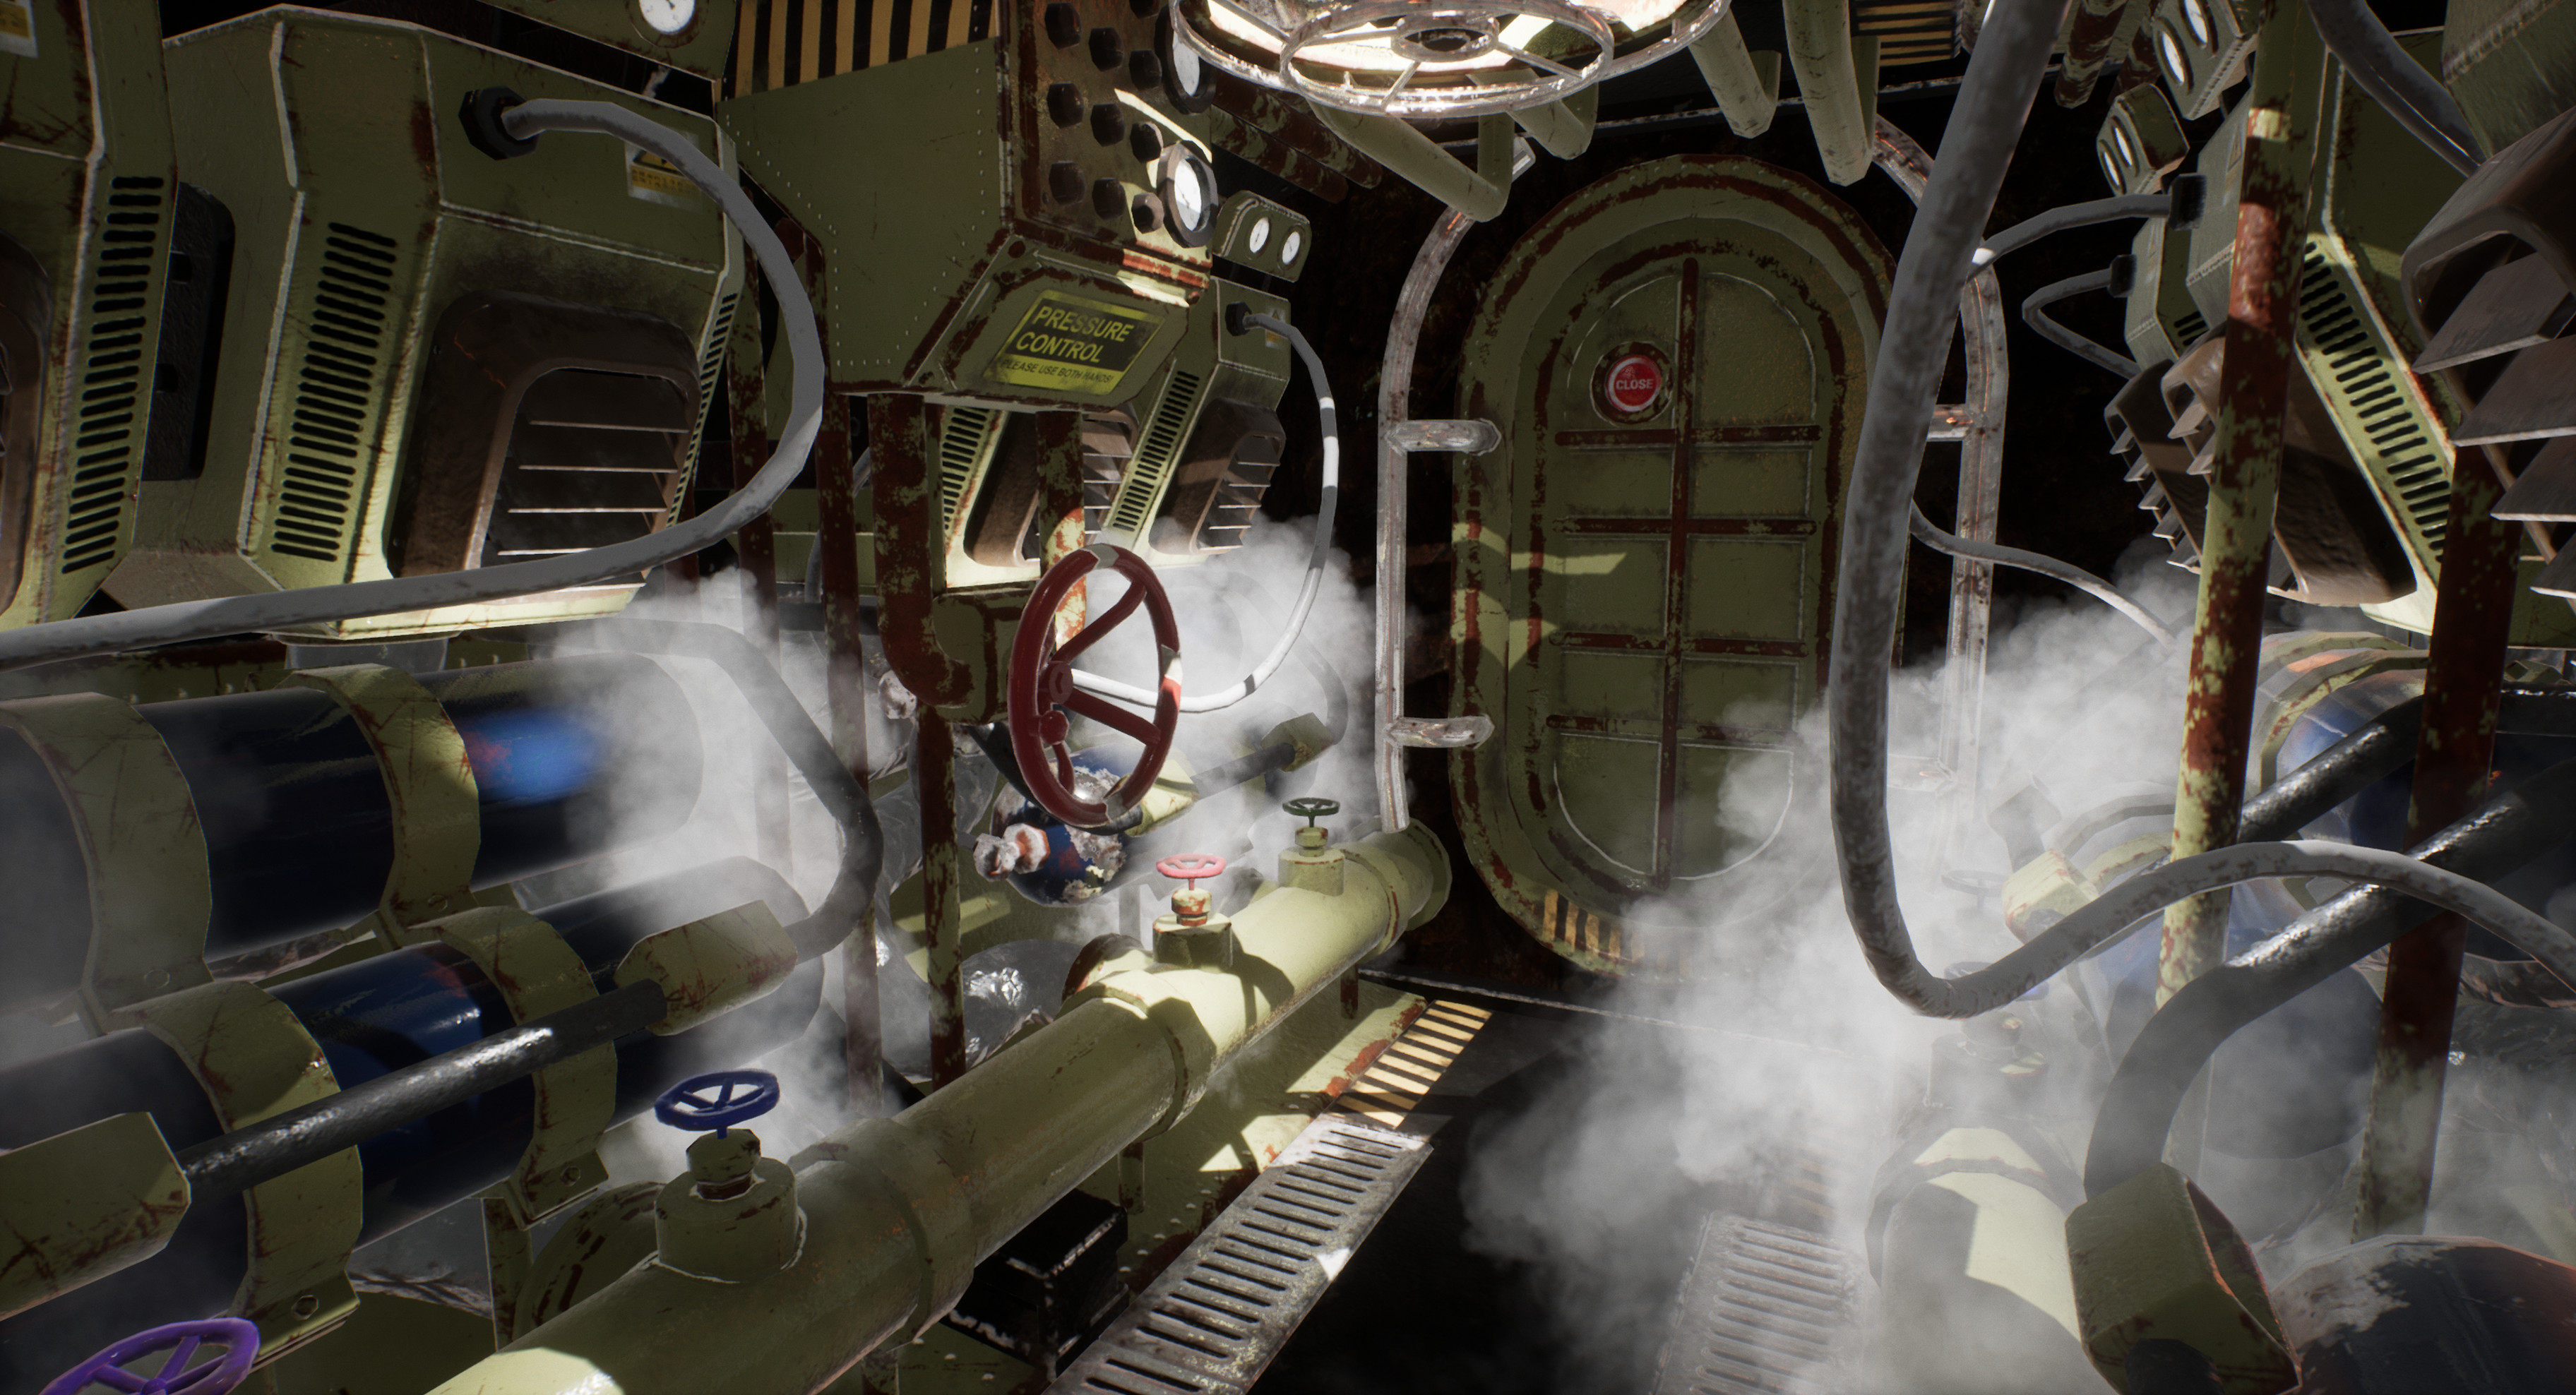 Heavily inspired by WW2 submarines, the airlock represent a blast from the past. As Accomm 5 was constructed around a former mining outpost, a few (mostly functional) elements remained and formed a harsh contrast against the cozier parts of the station.